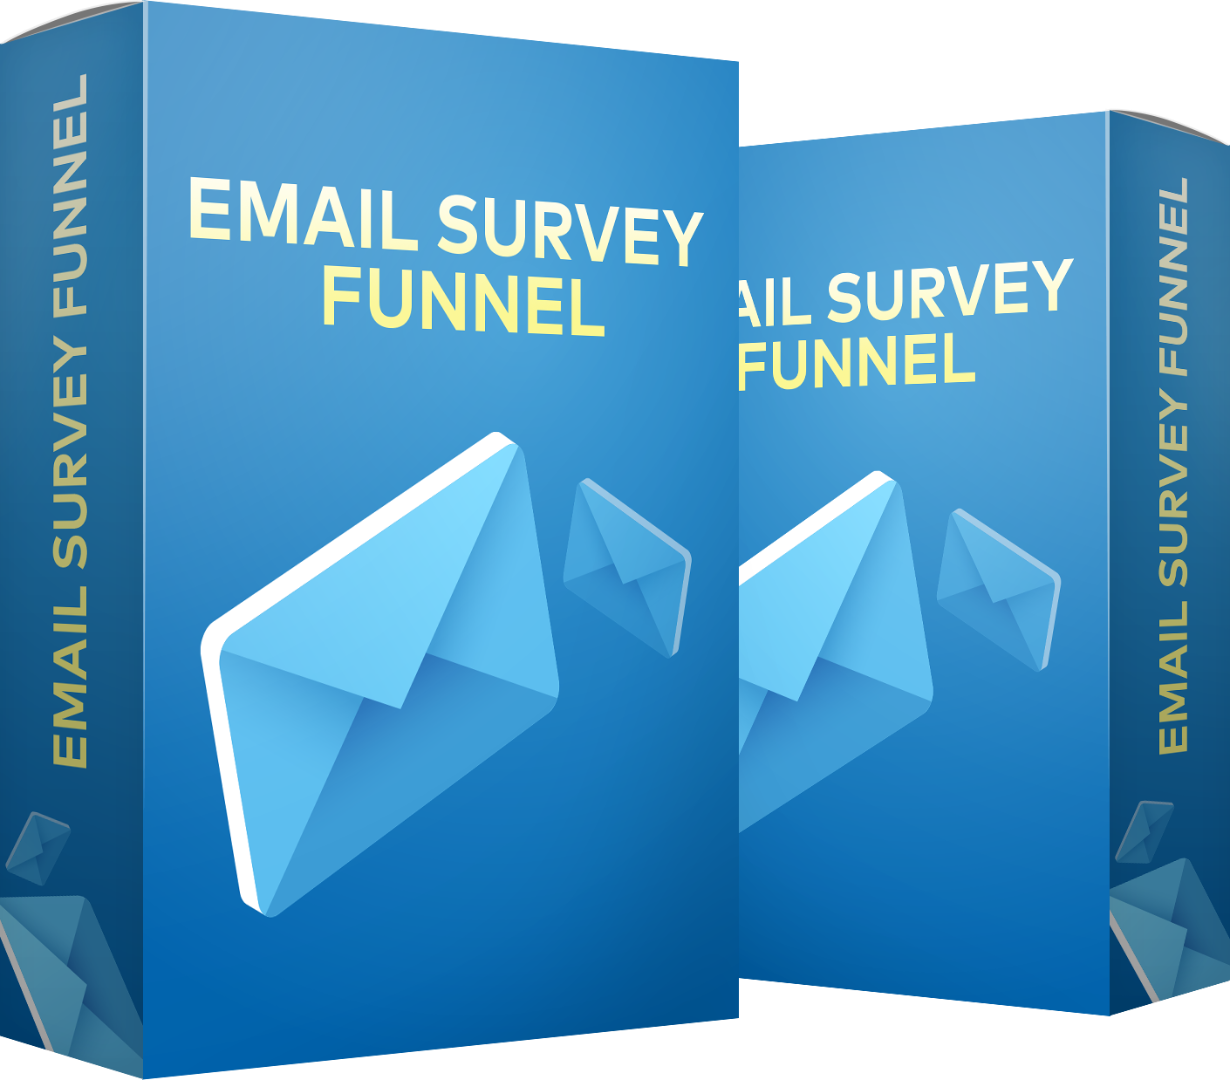 email survey funnel.png